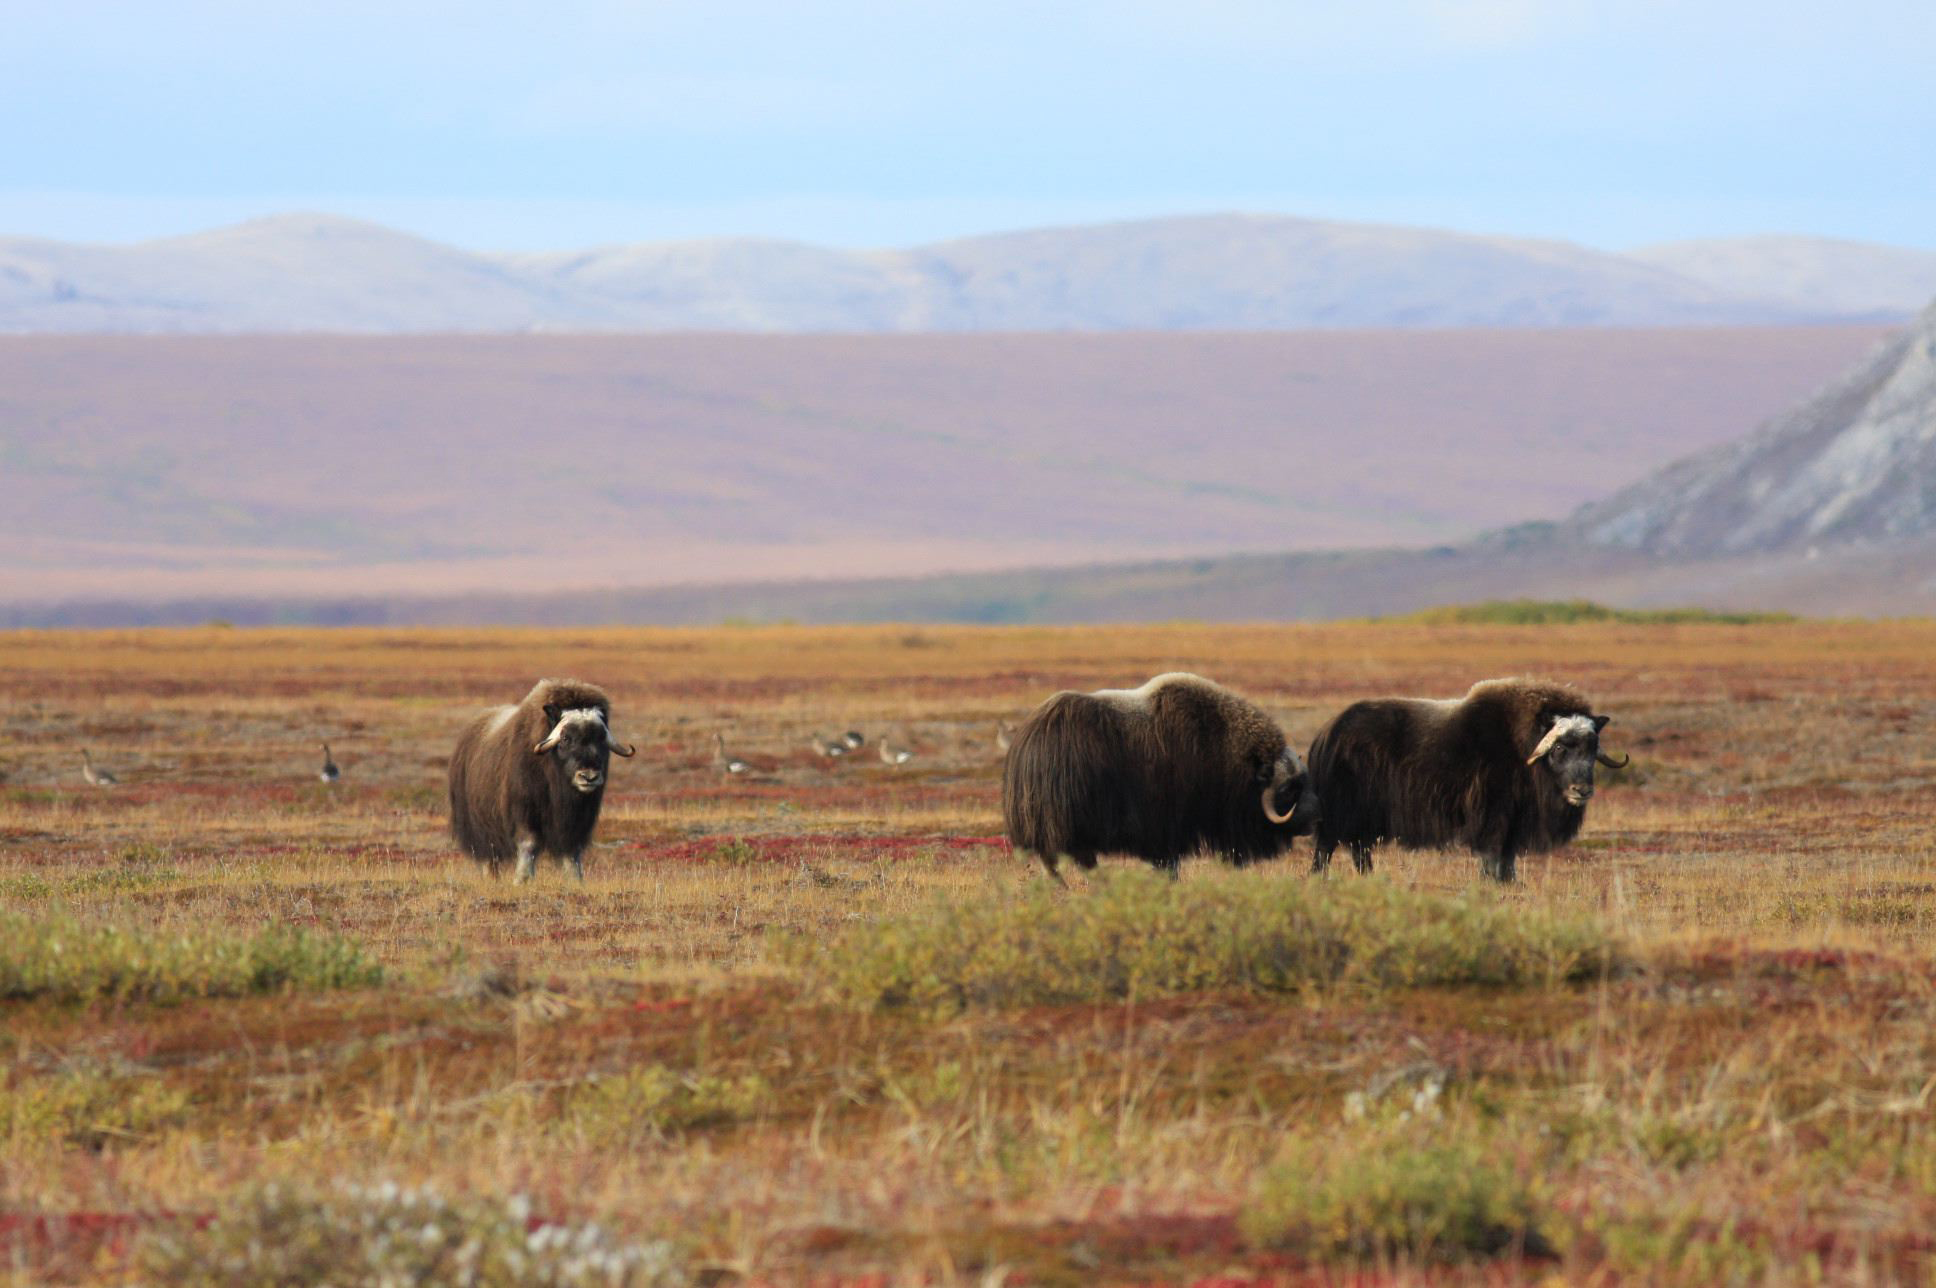 Free download high resolution image - free image free photo free stock image public domain picture -Muskox and Greater White-fronted Geese